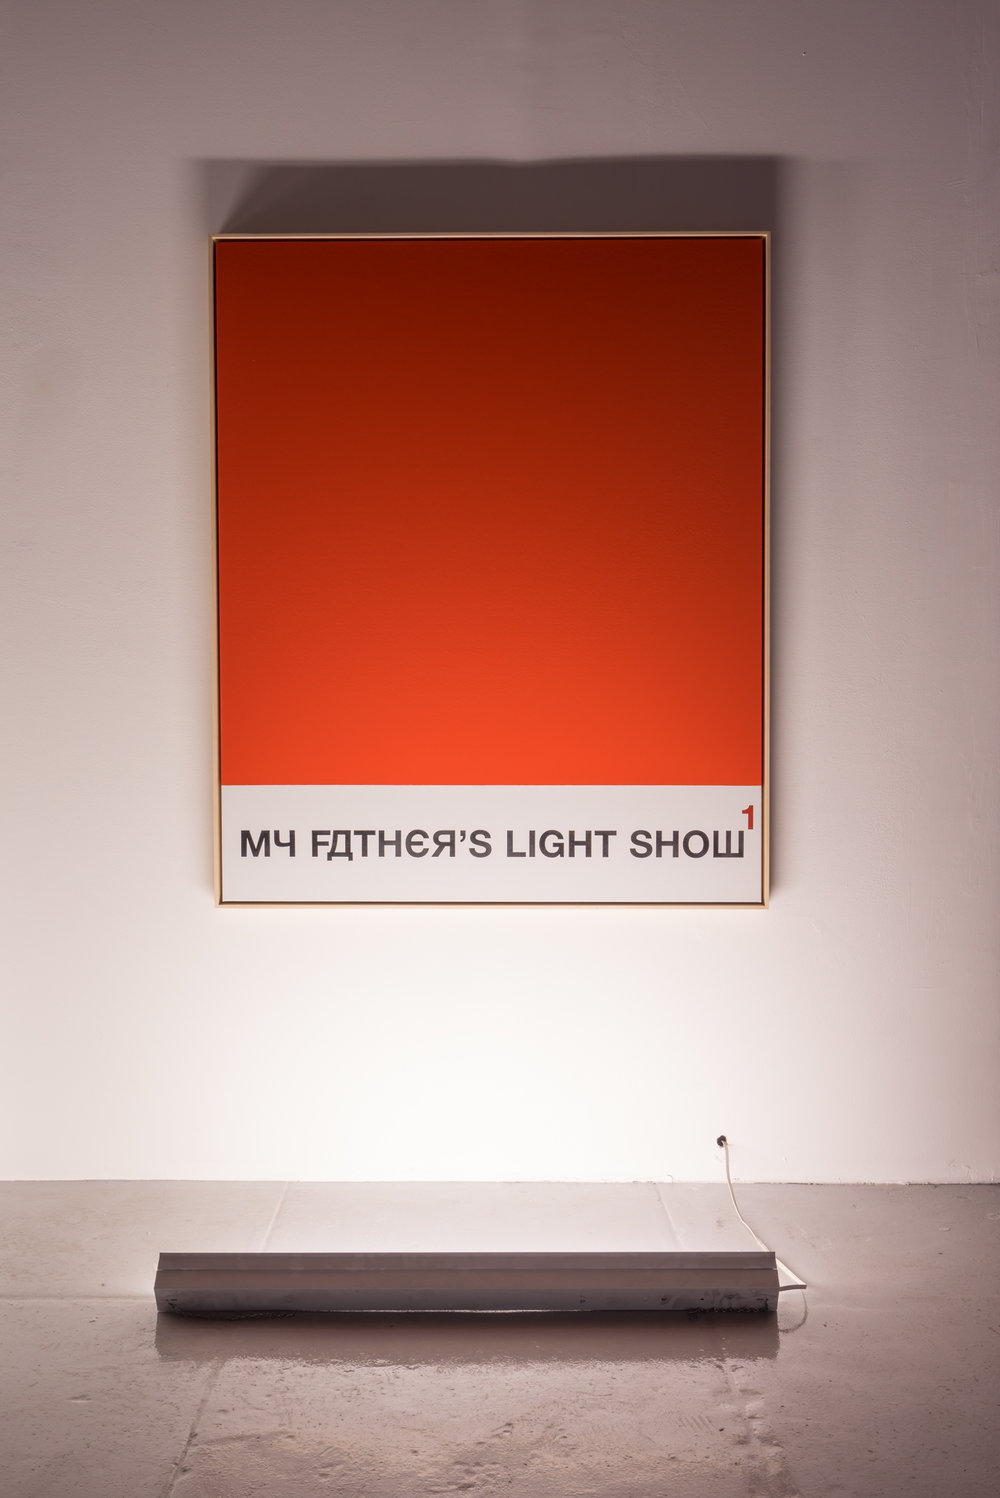 MY FATHER'S LIGHT SHOW, 2016, Acrylic and spray paint on linen, 63.13 x 52.06 in (160.35h x 132.23w cm)